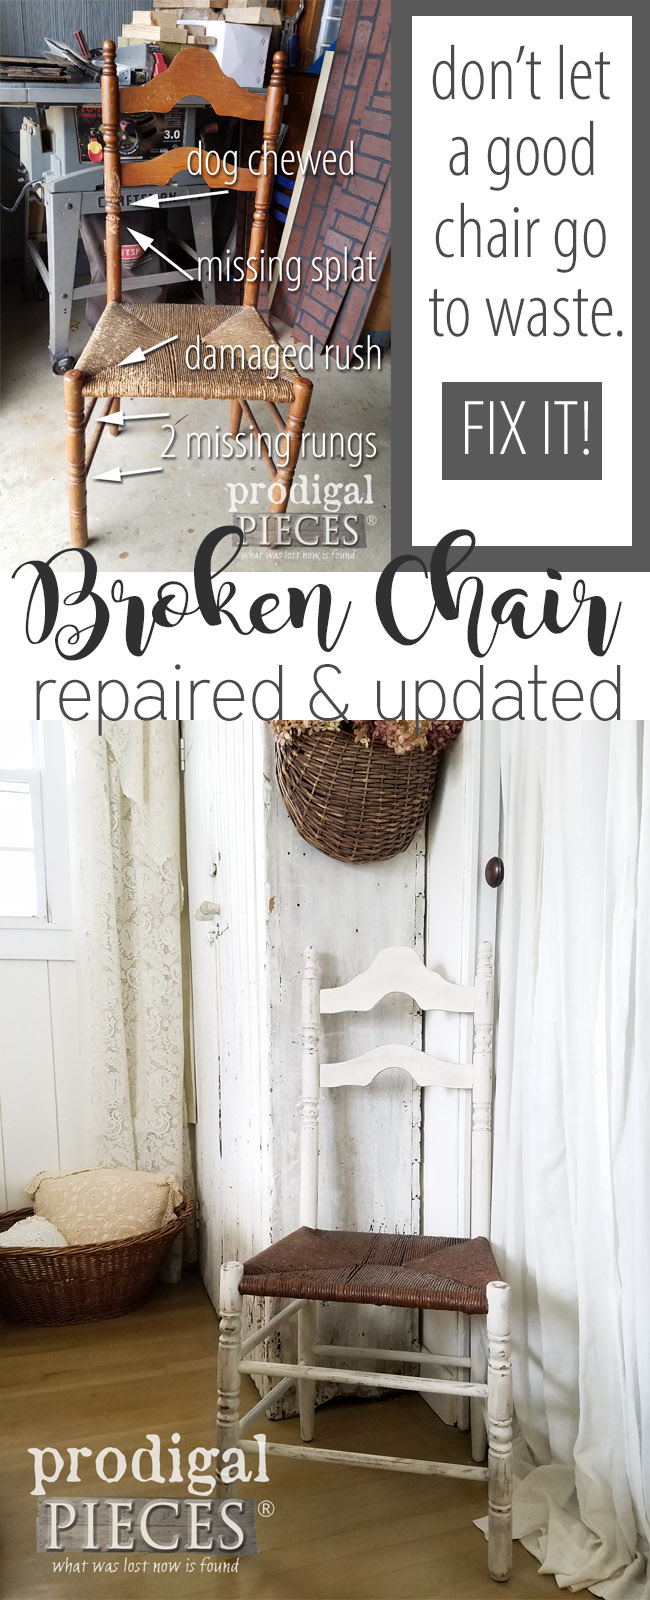 Fantastic! This antique farmhouse chair was needing much TLC. Come see how easy broken chair repair can be and dive in DIY style. Details at Prodigal Pieces | prodigalpieces.com